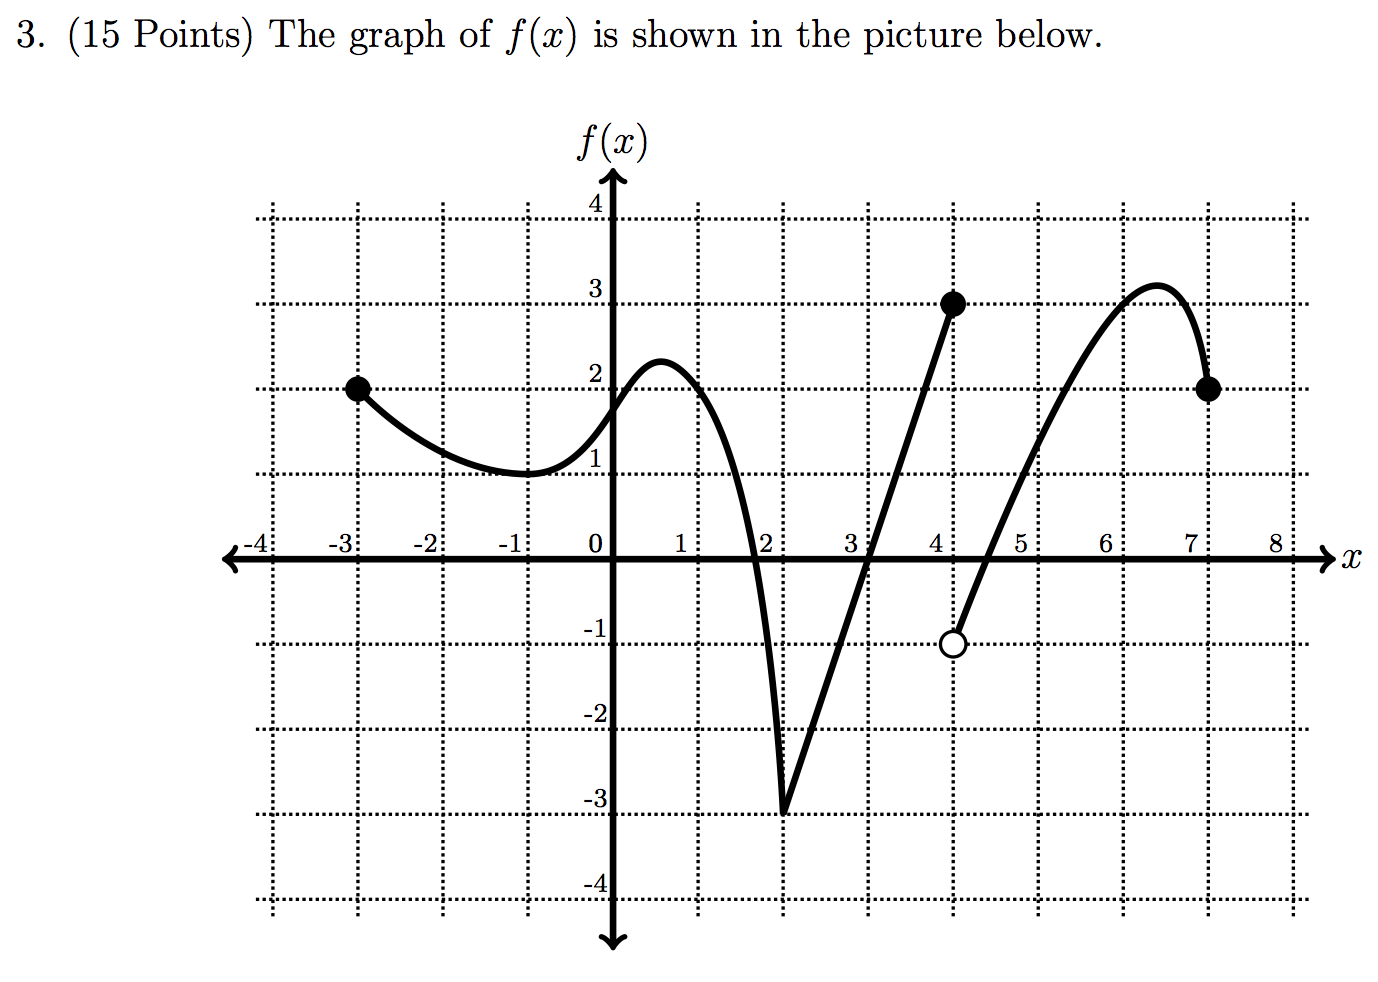 I Am Given A Graph Of F(x) And Asked To Find Various